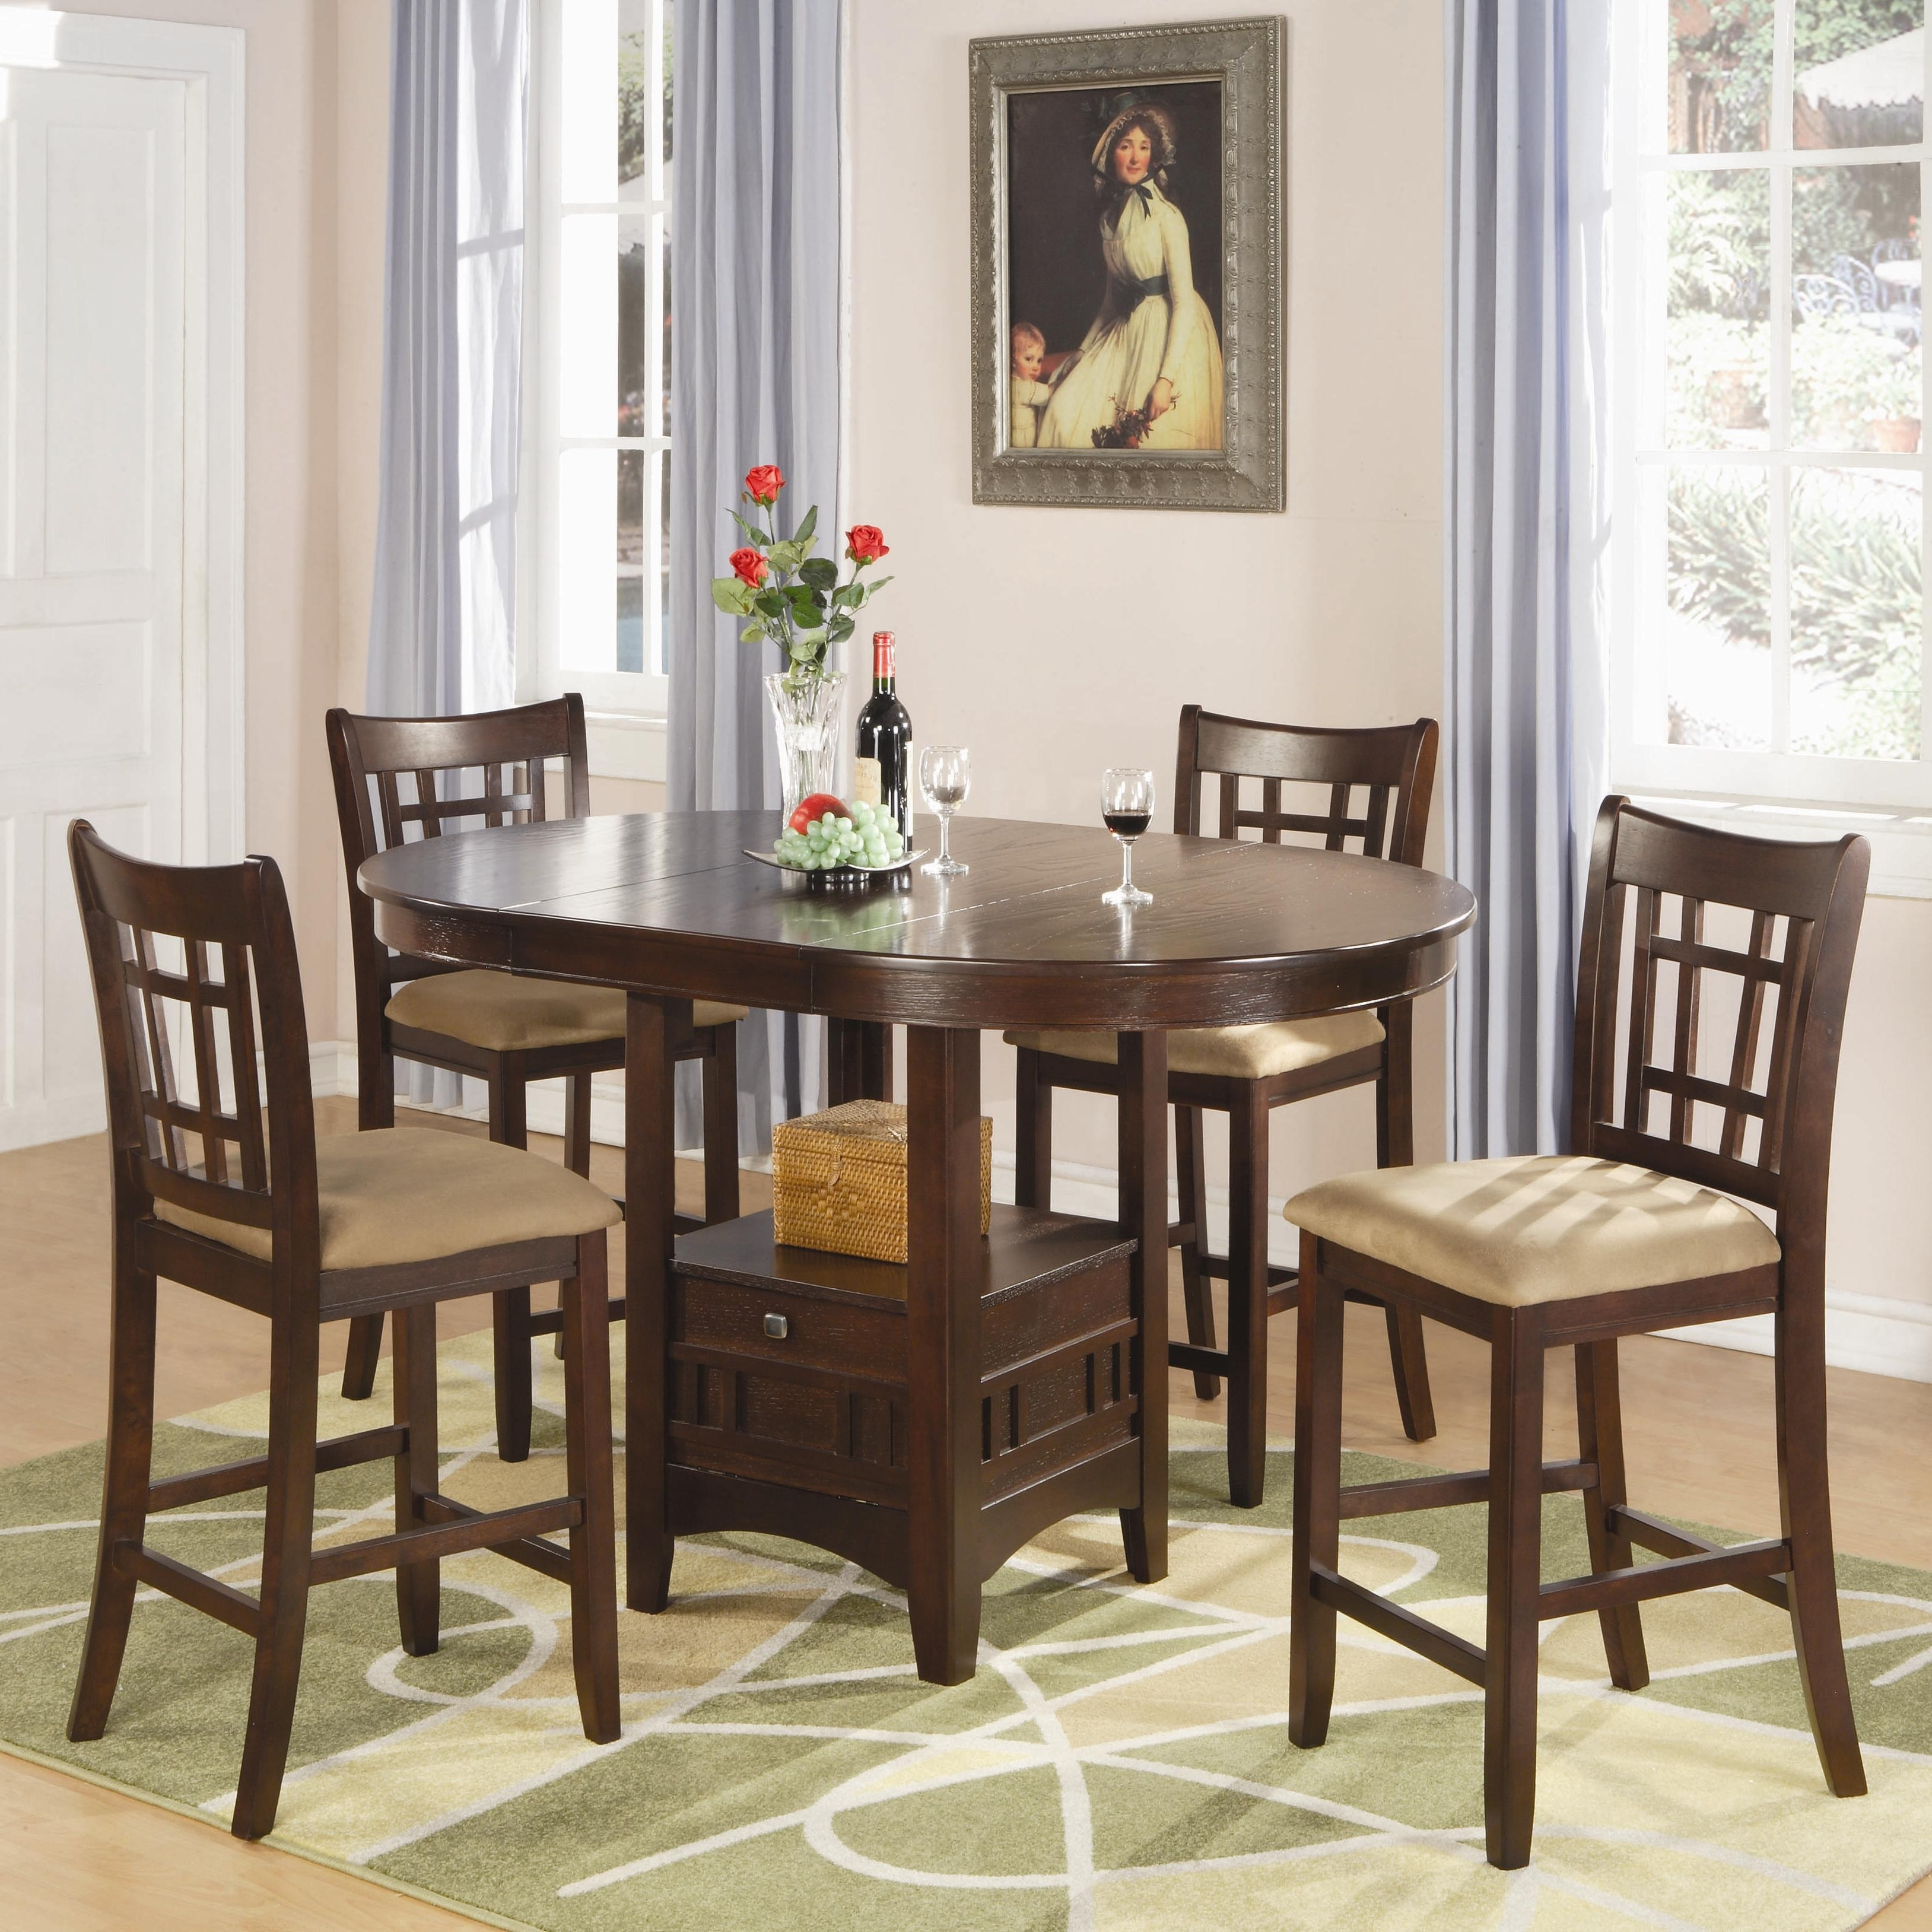 2017 Craftsman 5 Piece Round Dining Sets With Uph Side Chairs In Coaster – Find A Local Furniture Store With Coaster Fine Furniture (View 2 of 25)